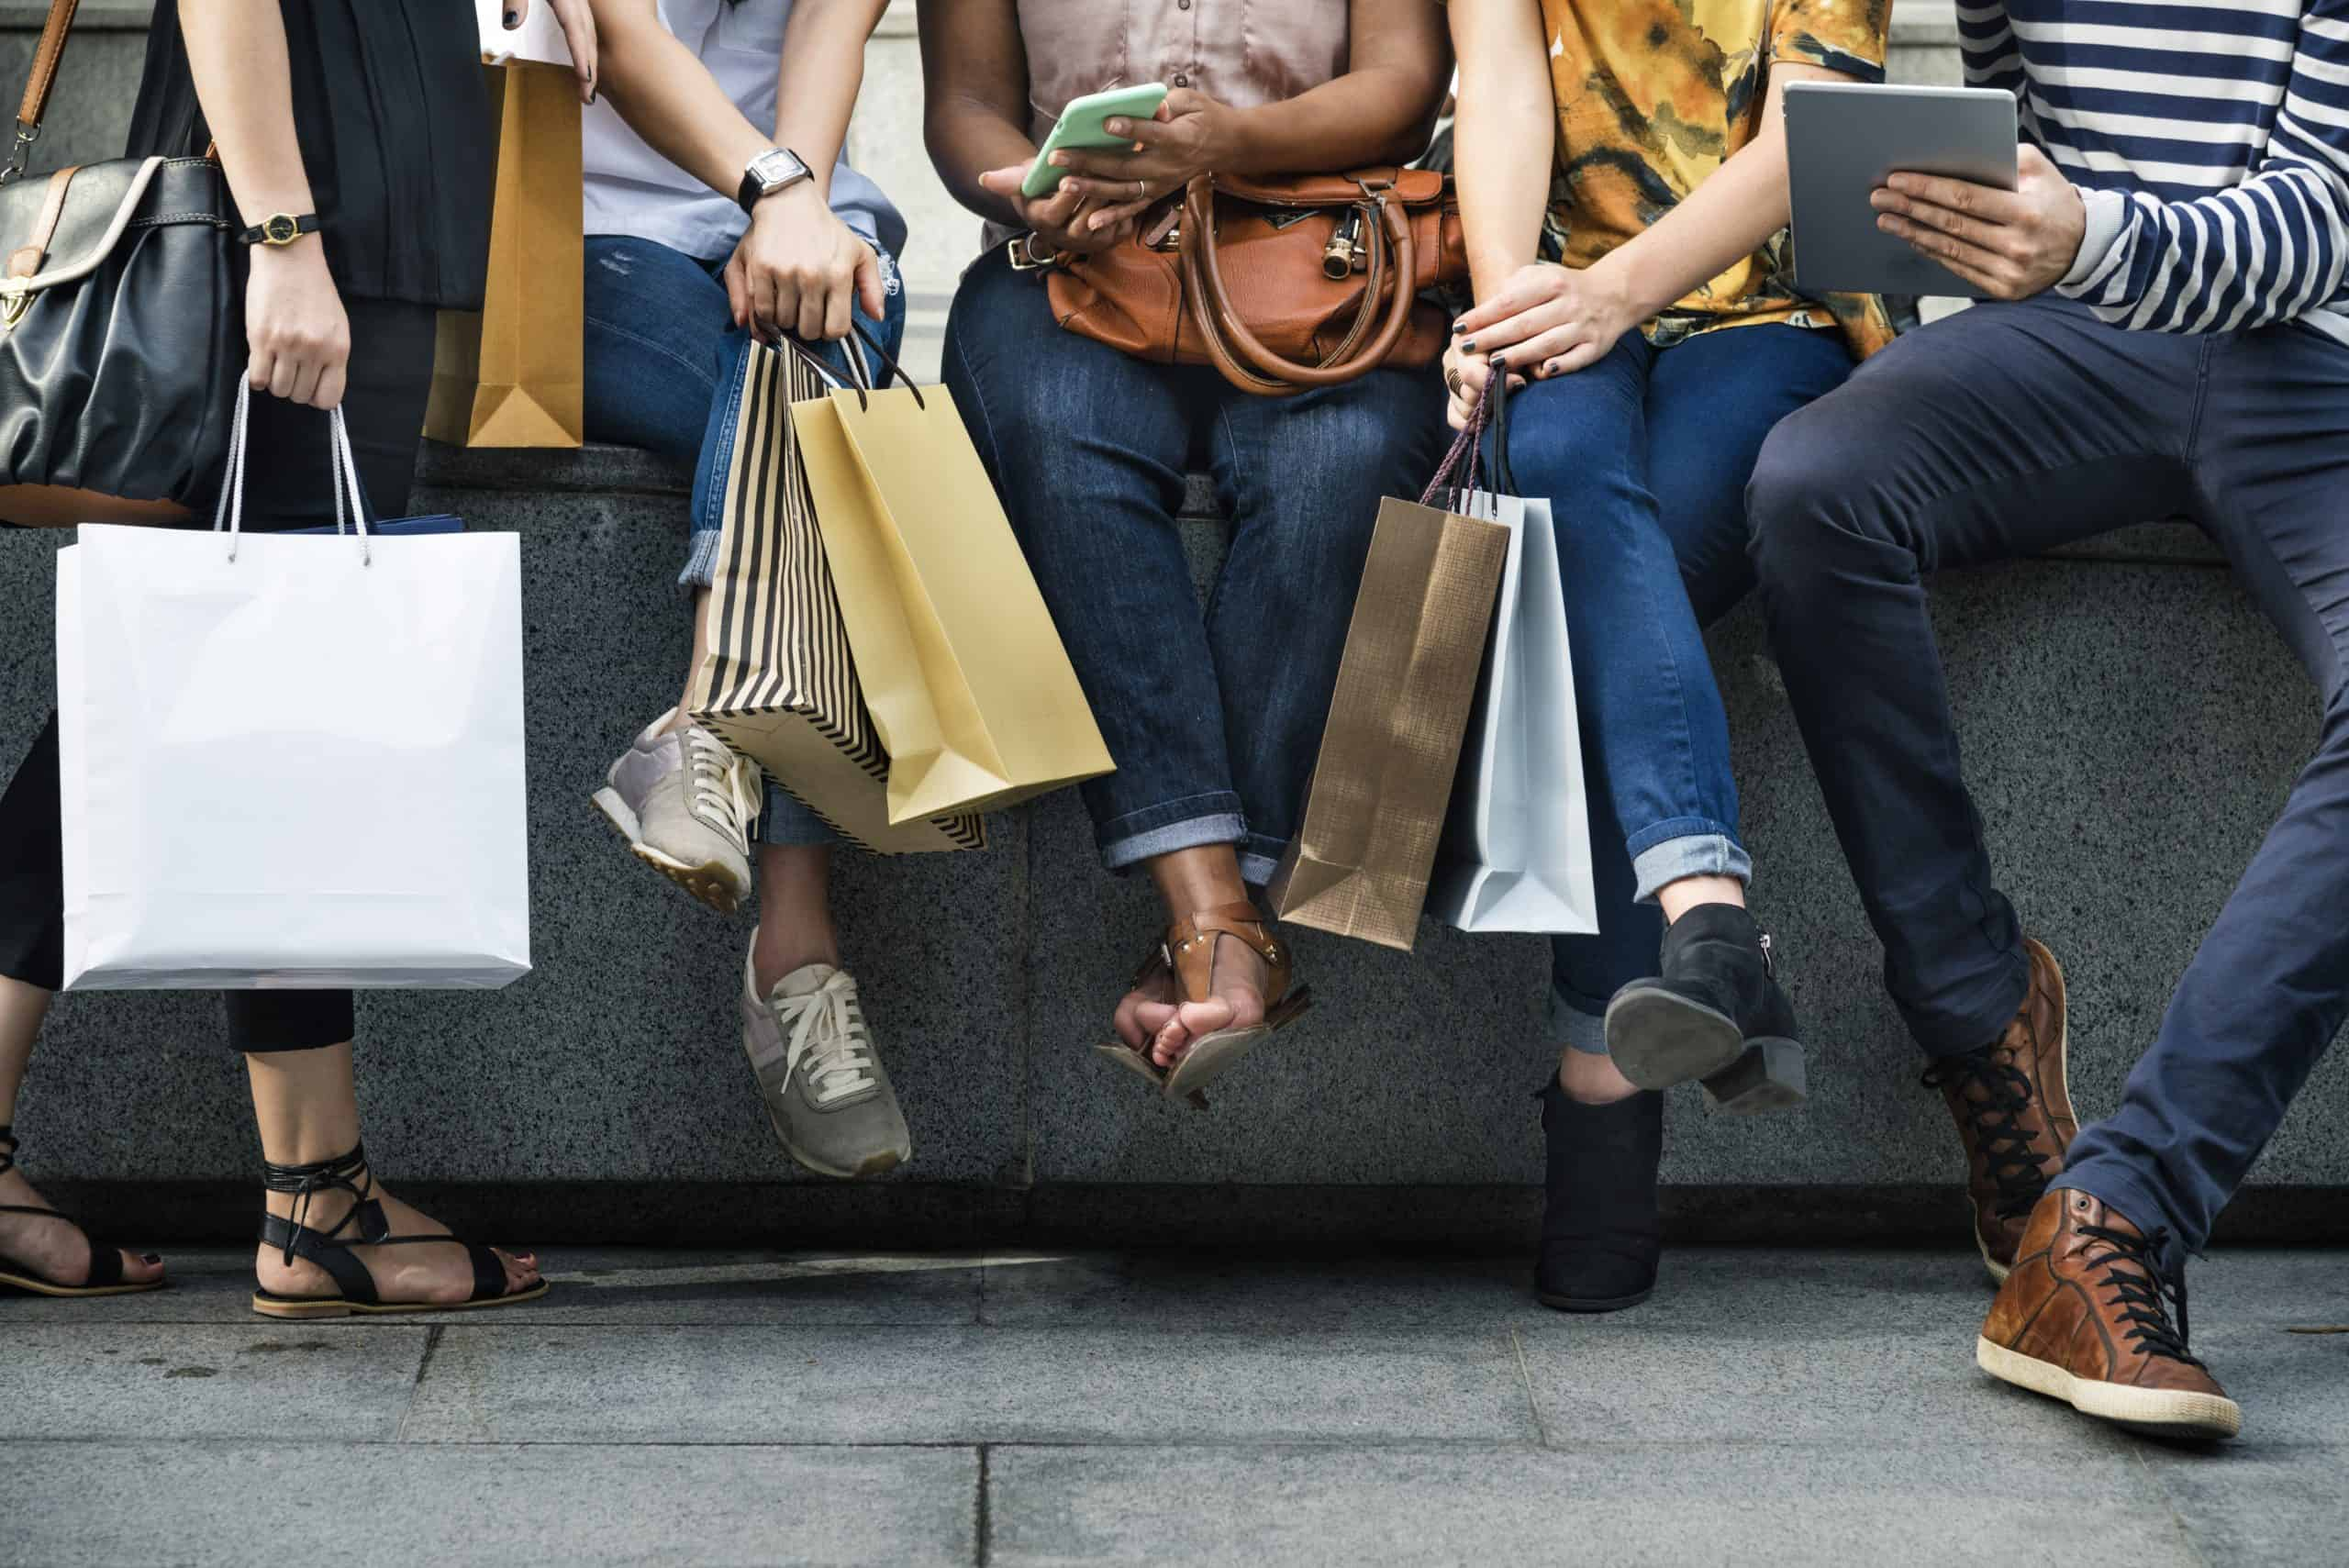 A group of people holding shopping bags